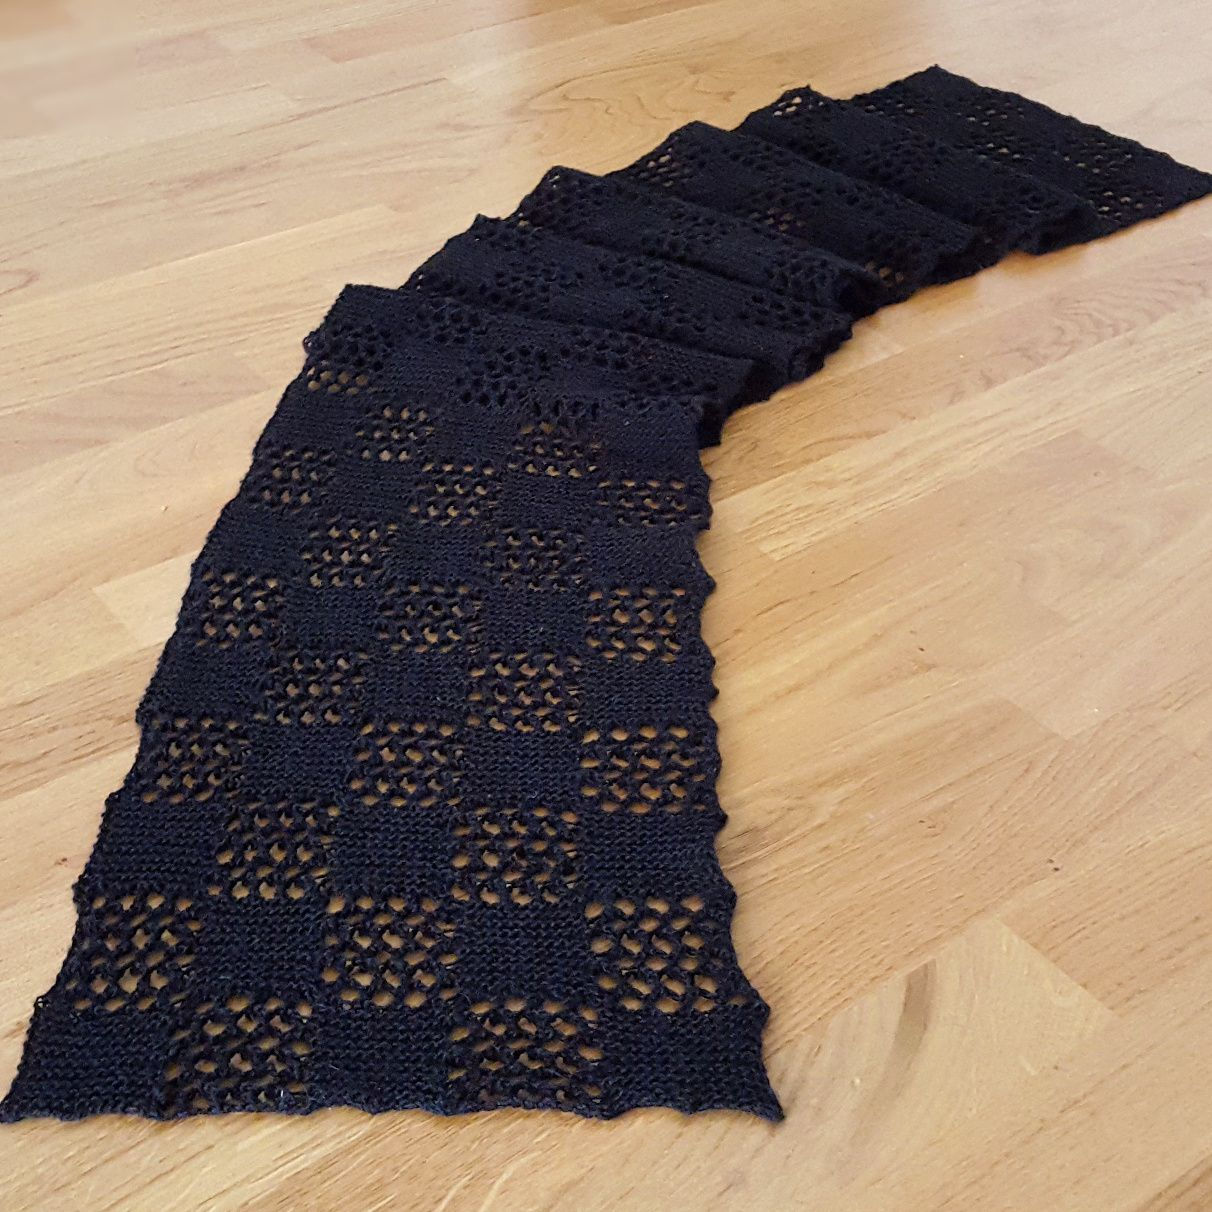 Checkered lace scarf free knitting pattern by knitting and so on checkered lace scarf free knitting pattern by knitting and so on dt1010fo